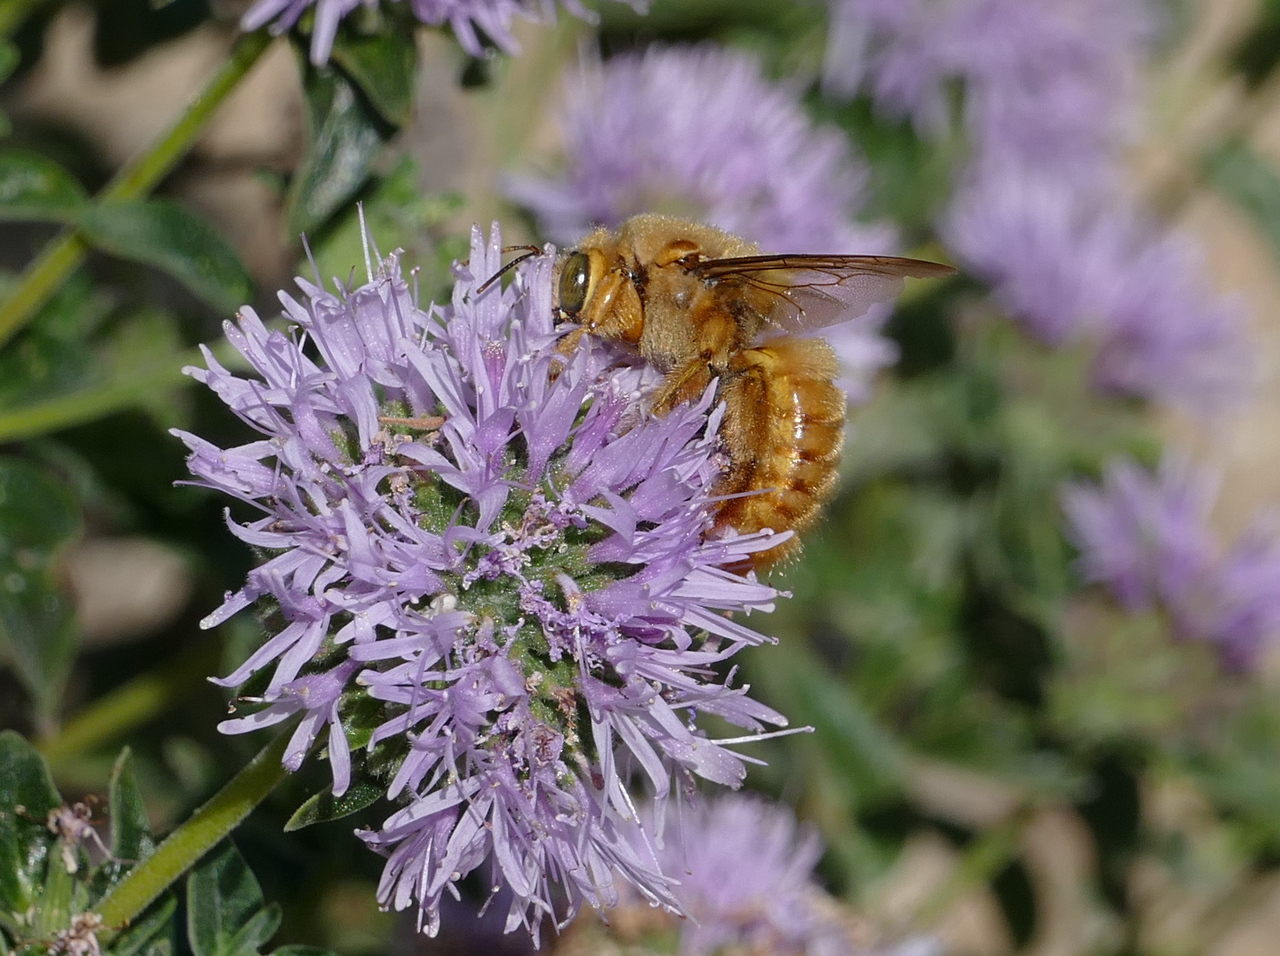 The valley carpenter bee returned to the coyote mint flowers so I took more pictures.  Sorting out the best pictures later was a chore but who's gonna stop when you have a subject like this in front of the camera.